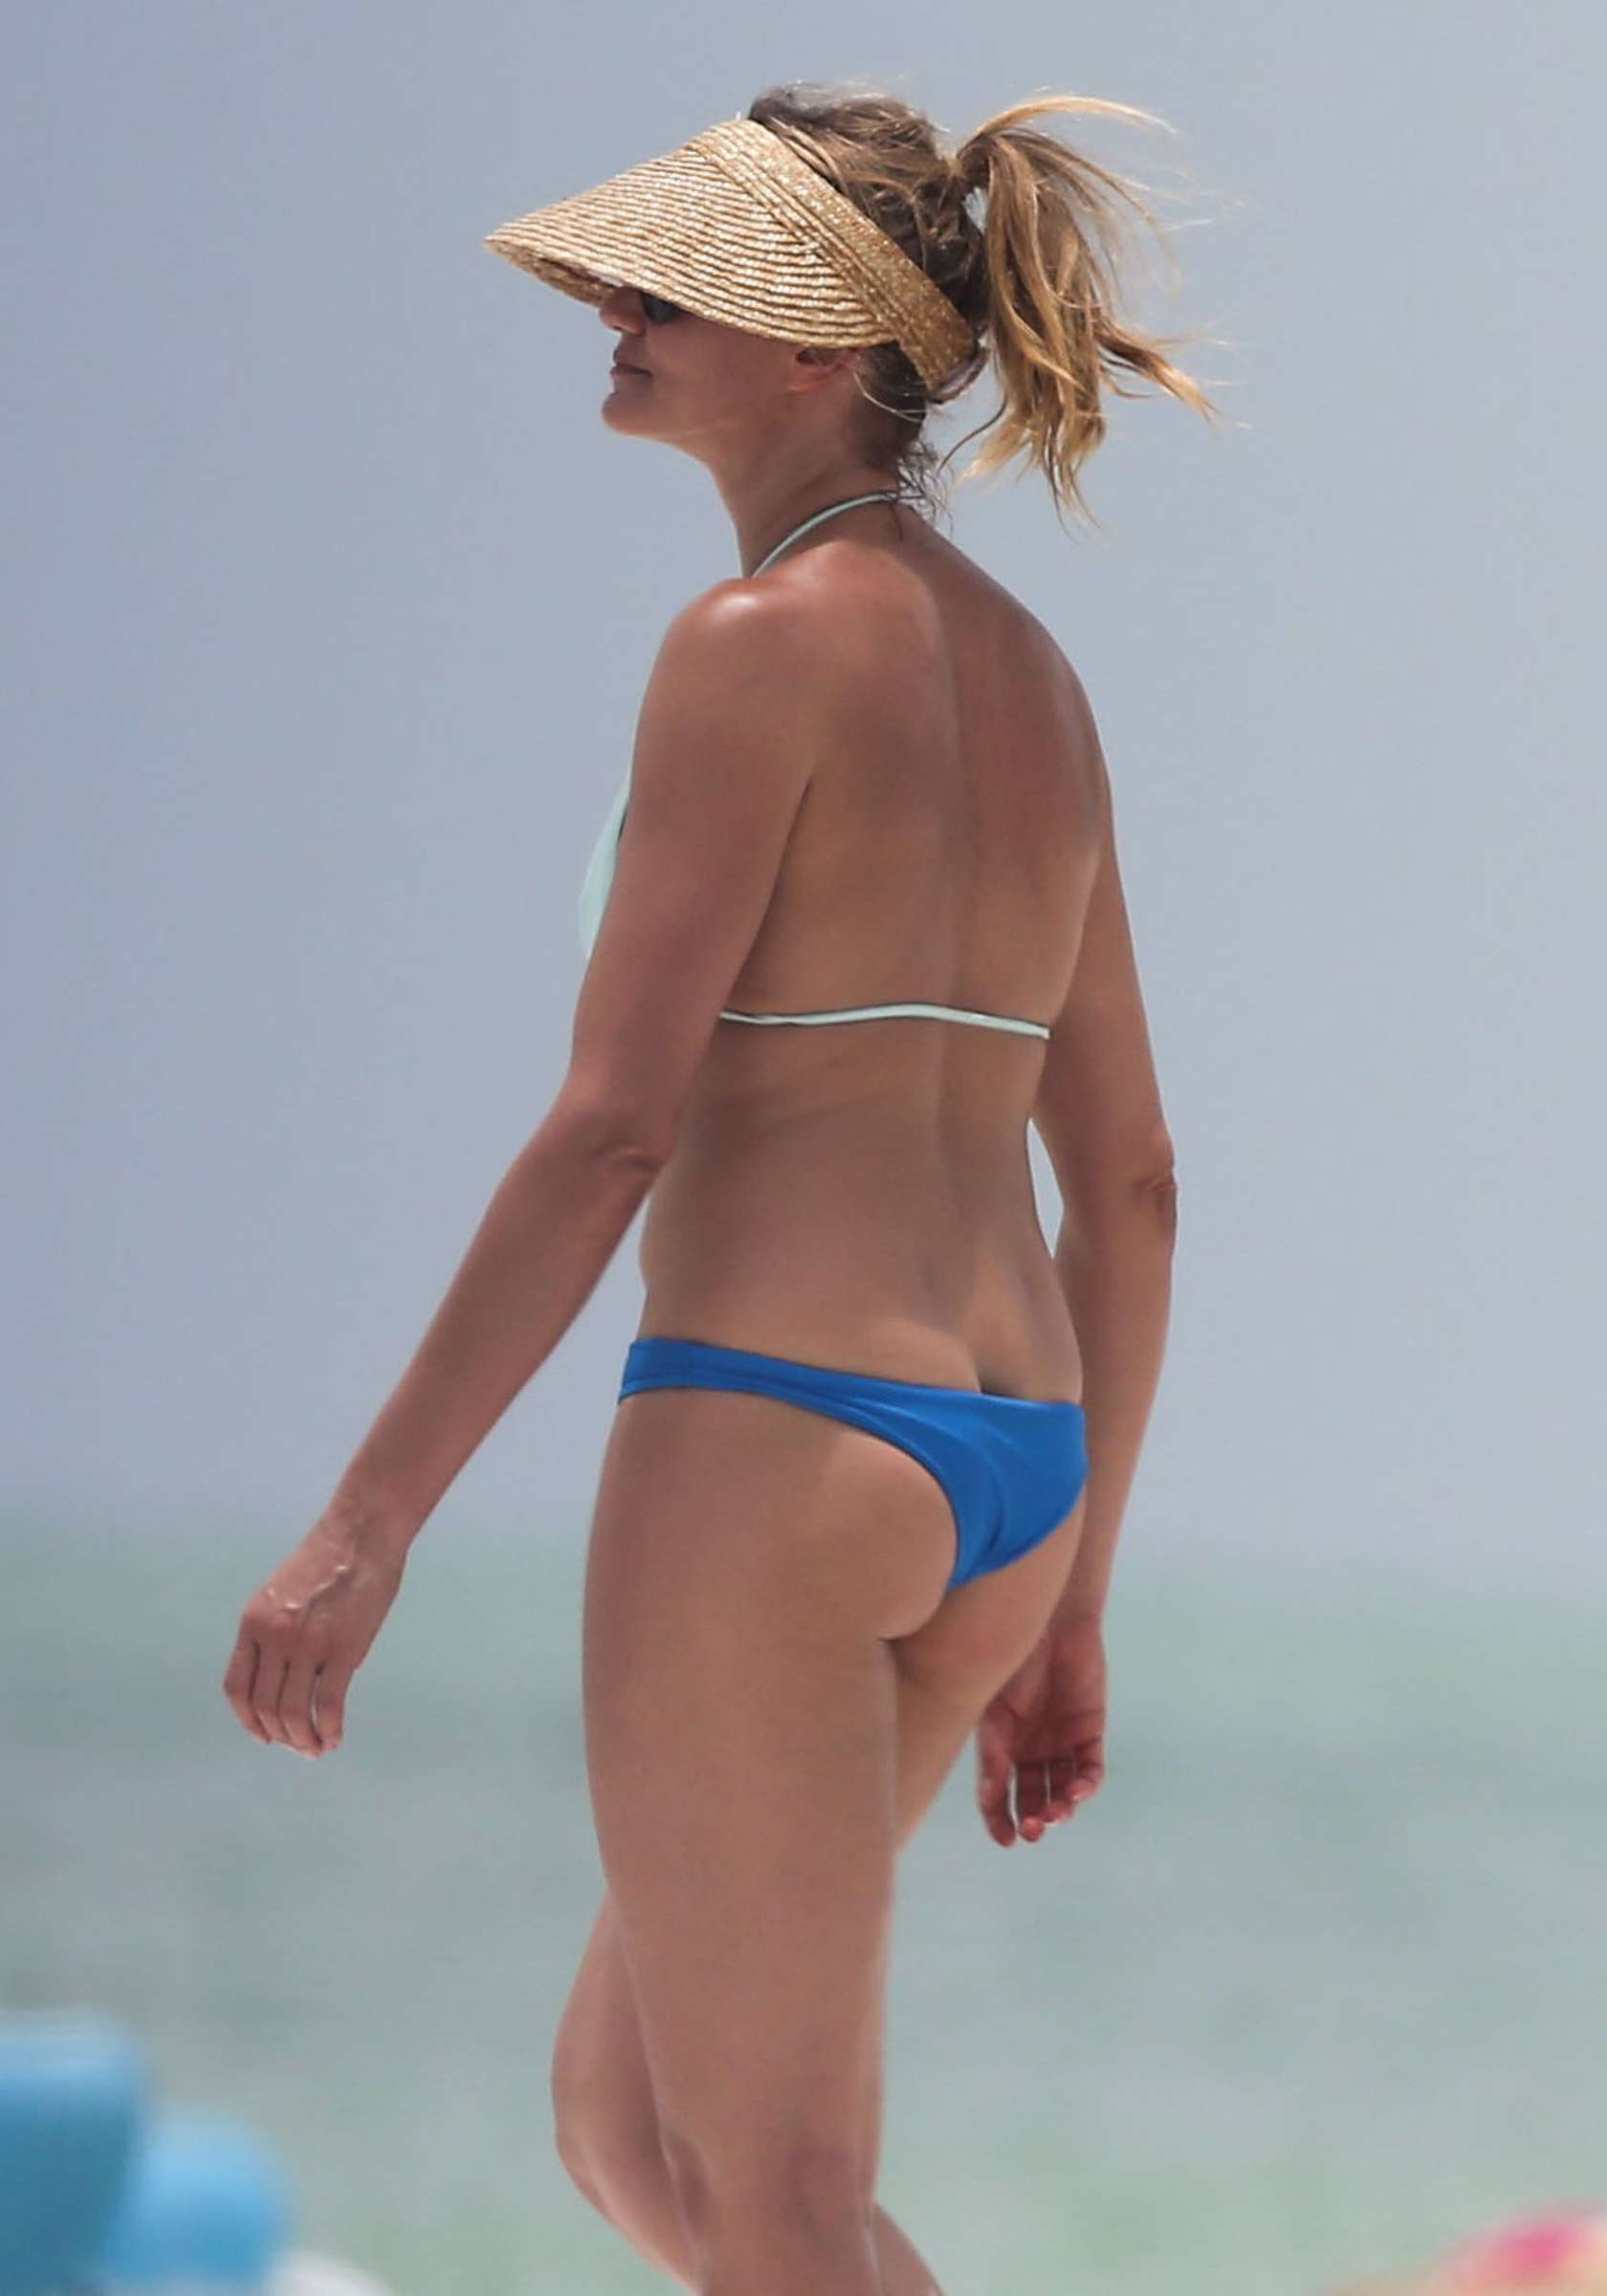 Cameron diaz bikini gallery, stana katic see through